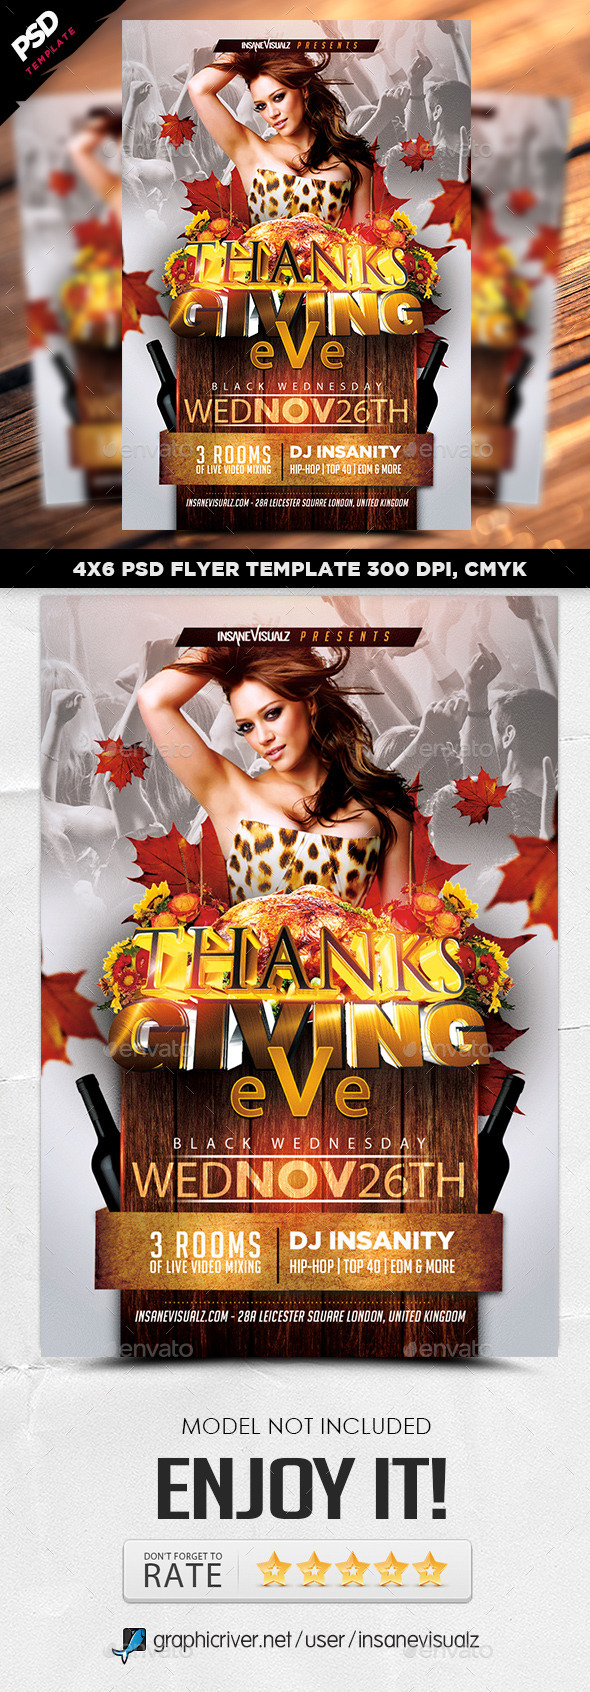 GraphicRiver Thanksgiving Eve 2014 Flyer 9277289